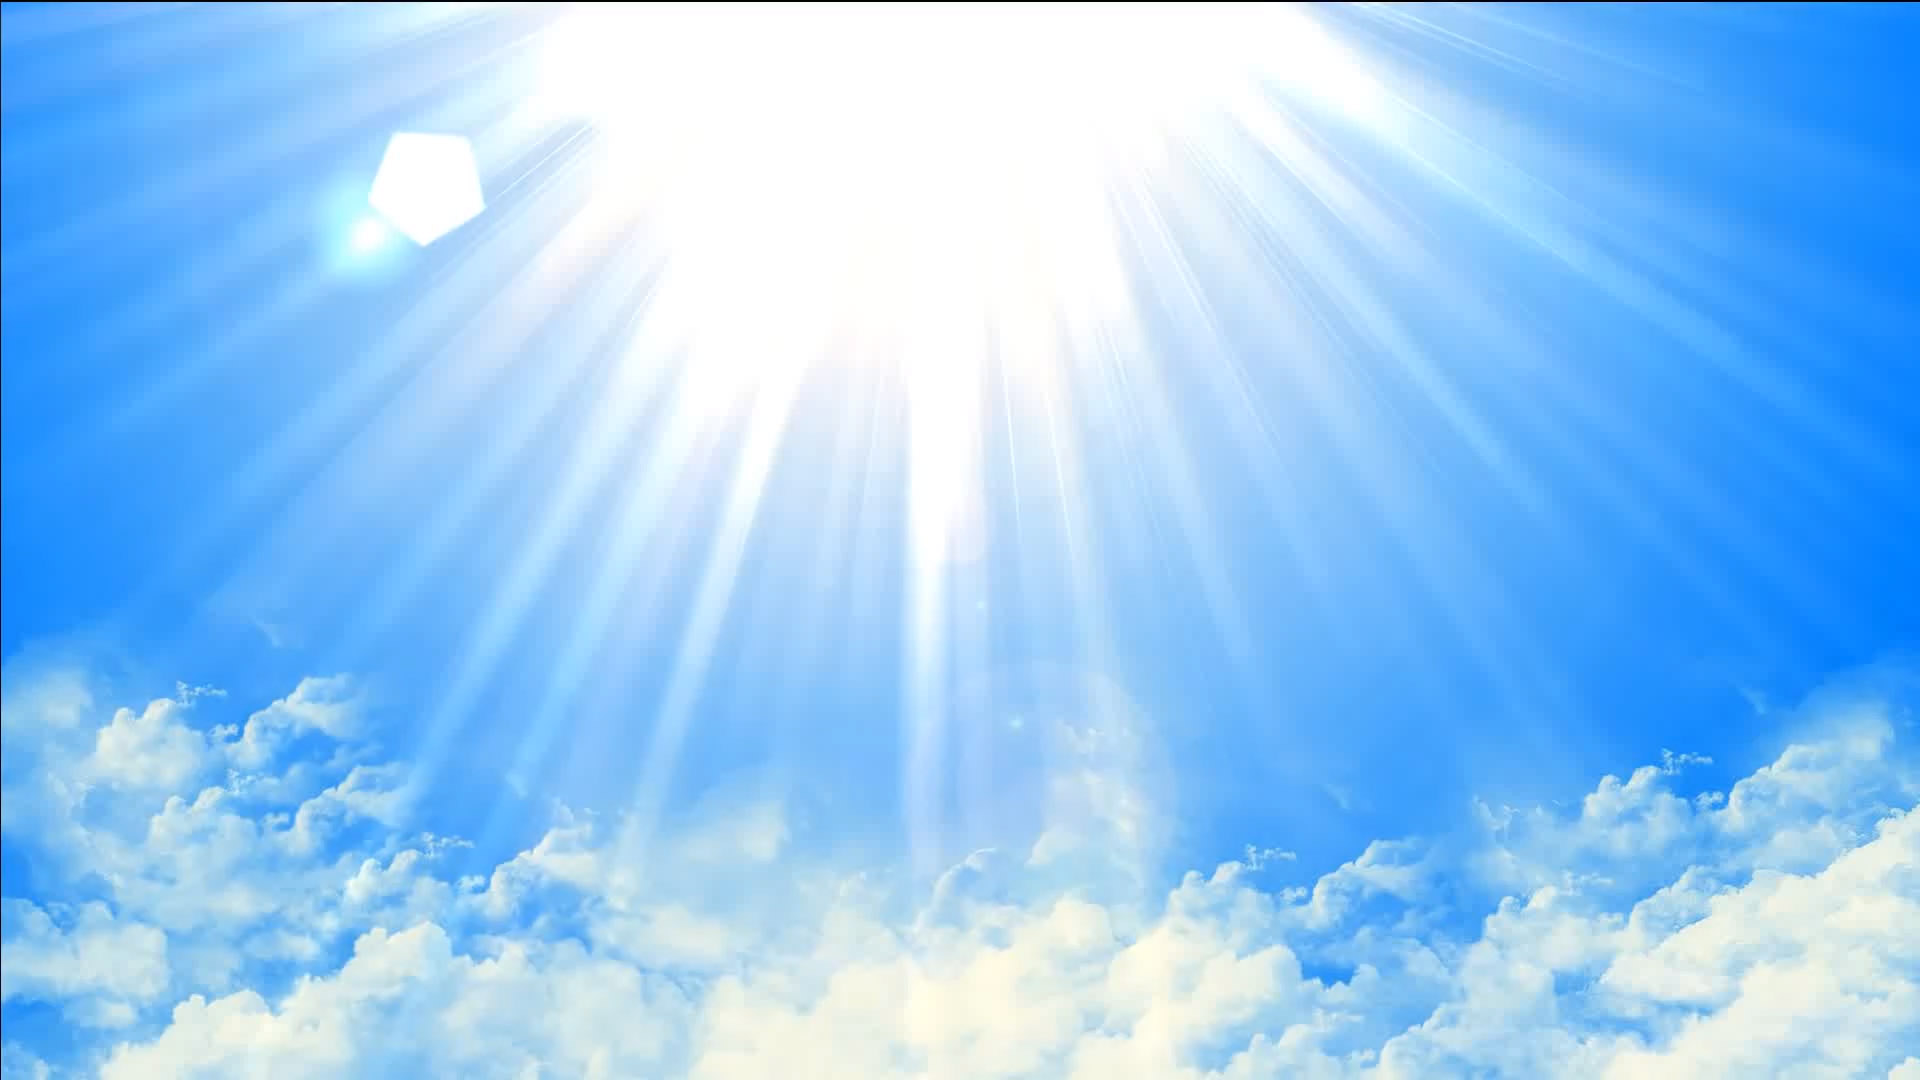 Purchase Animated Sun Shining Light On Blue Sky Background